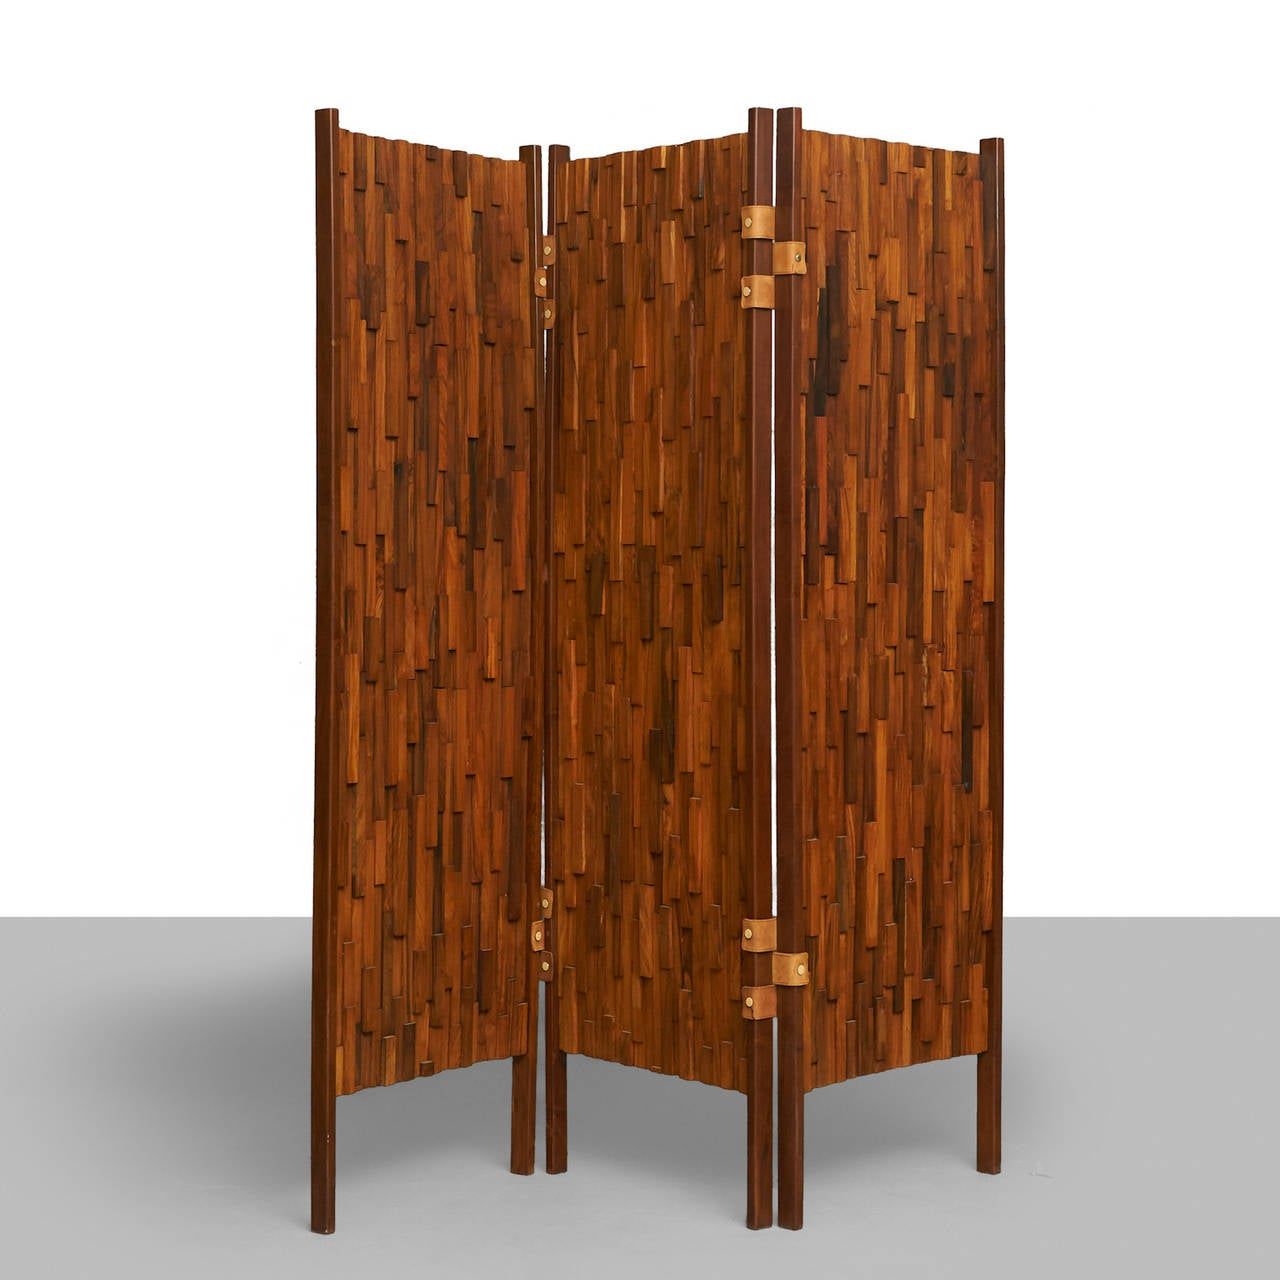 A pair of room dividers from Brazil. Made from predominantly rosewood, with additions of jacaranda, Pao Fero, Ipe and other hardwoods. Three panels each with leather hinges and brass details. Recently refinished. In the style of Percival